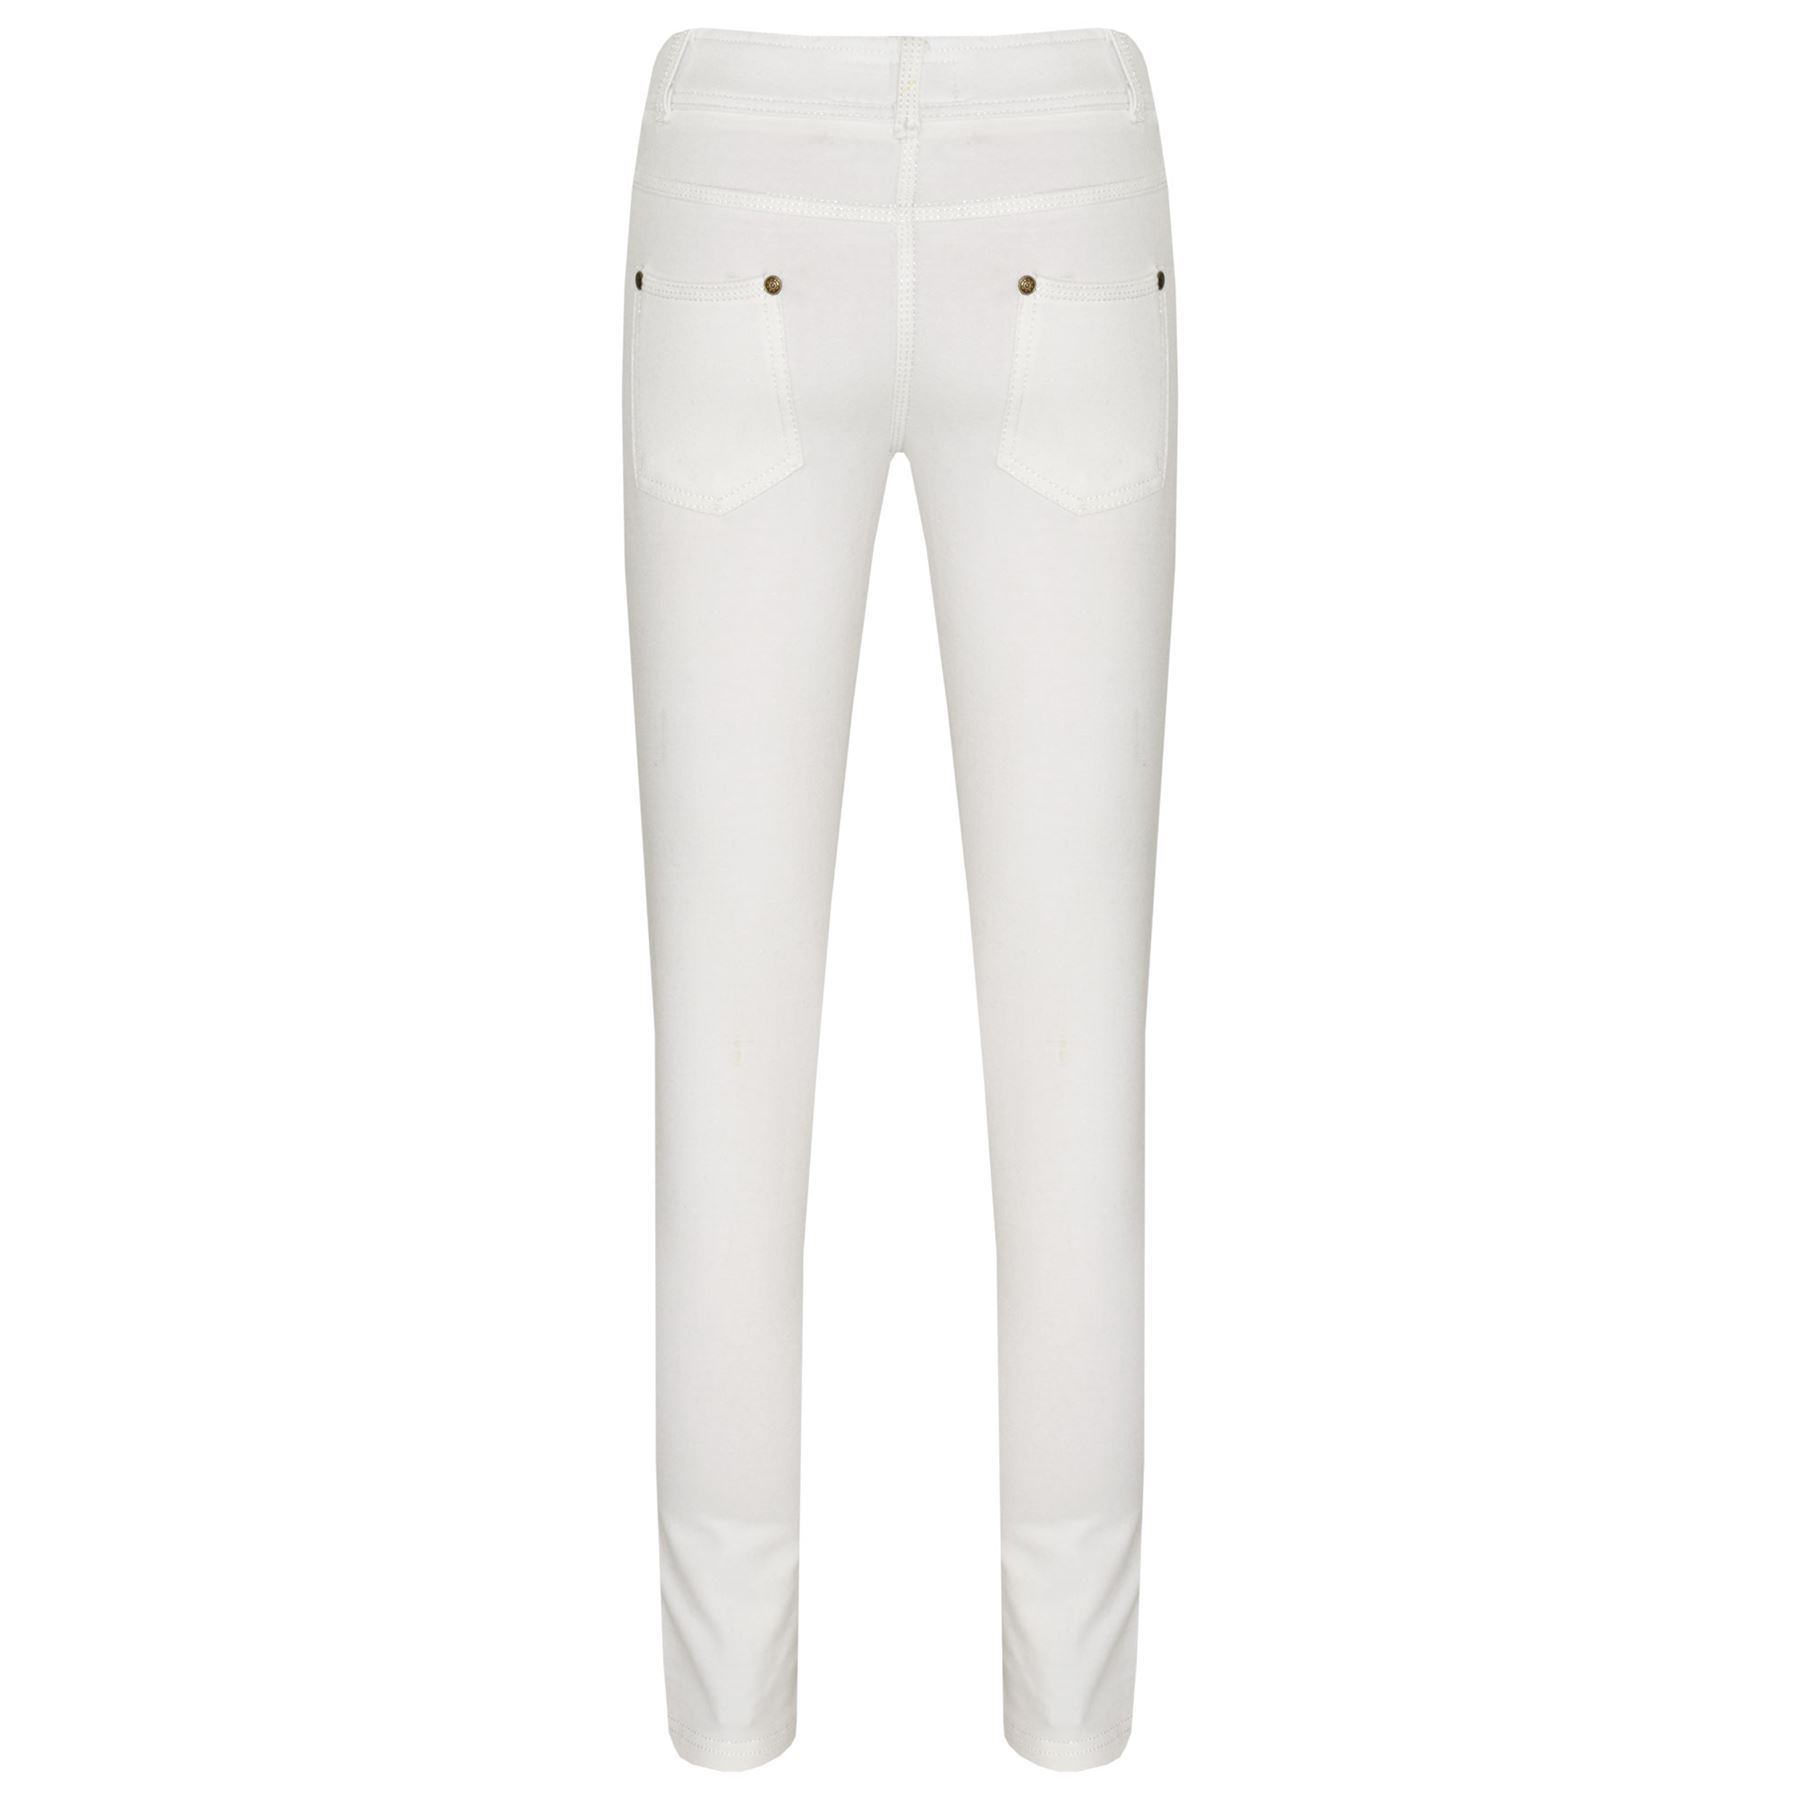 A2Z 4 Kids Girls Skinny Jeans Kids Purple Stretchy Jeggings Denim Fit Pants Fashion Coloured Trousers Age 5 6 7 8 9 10 11 12 13 Years